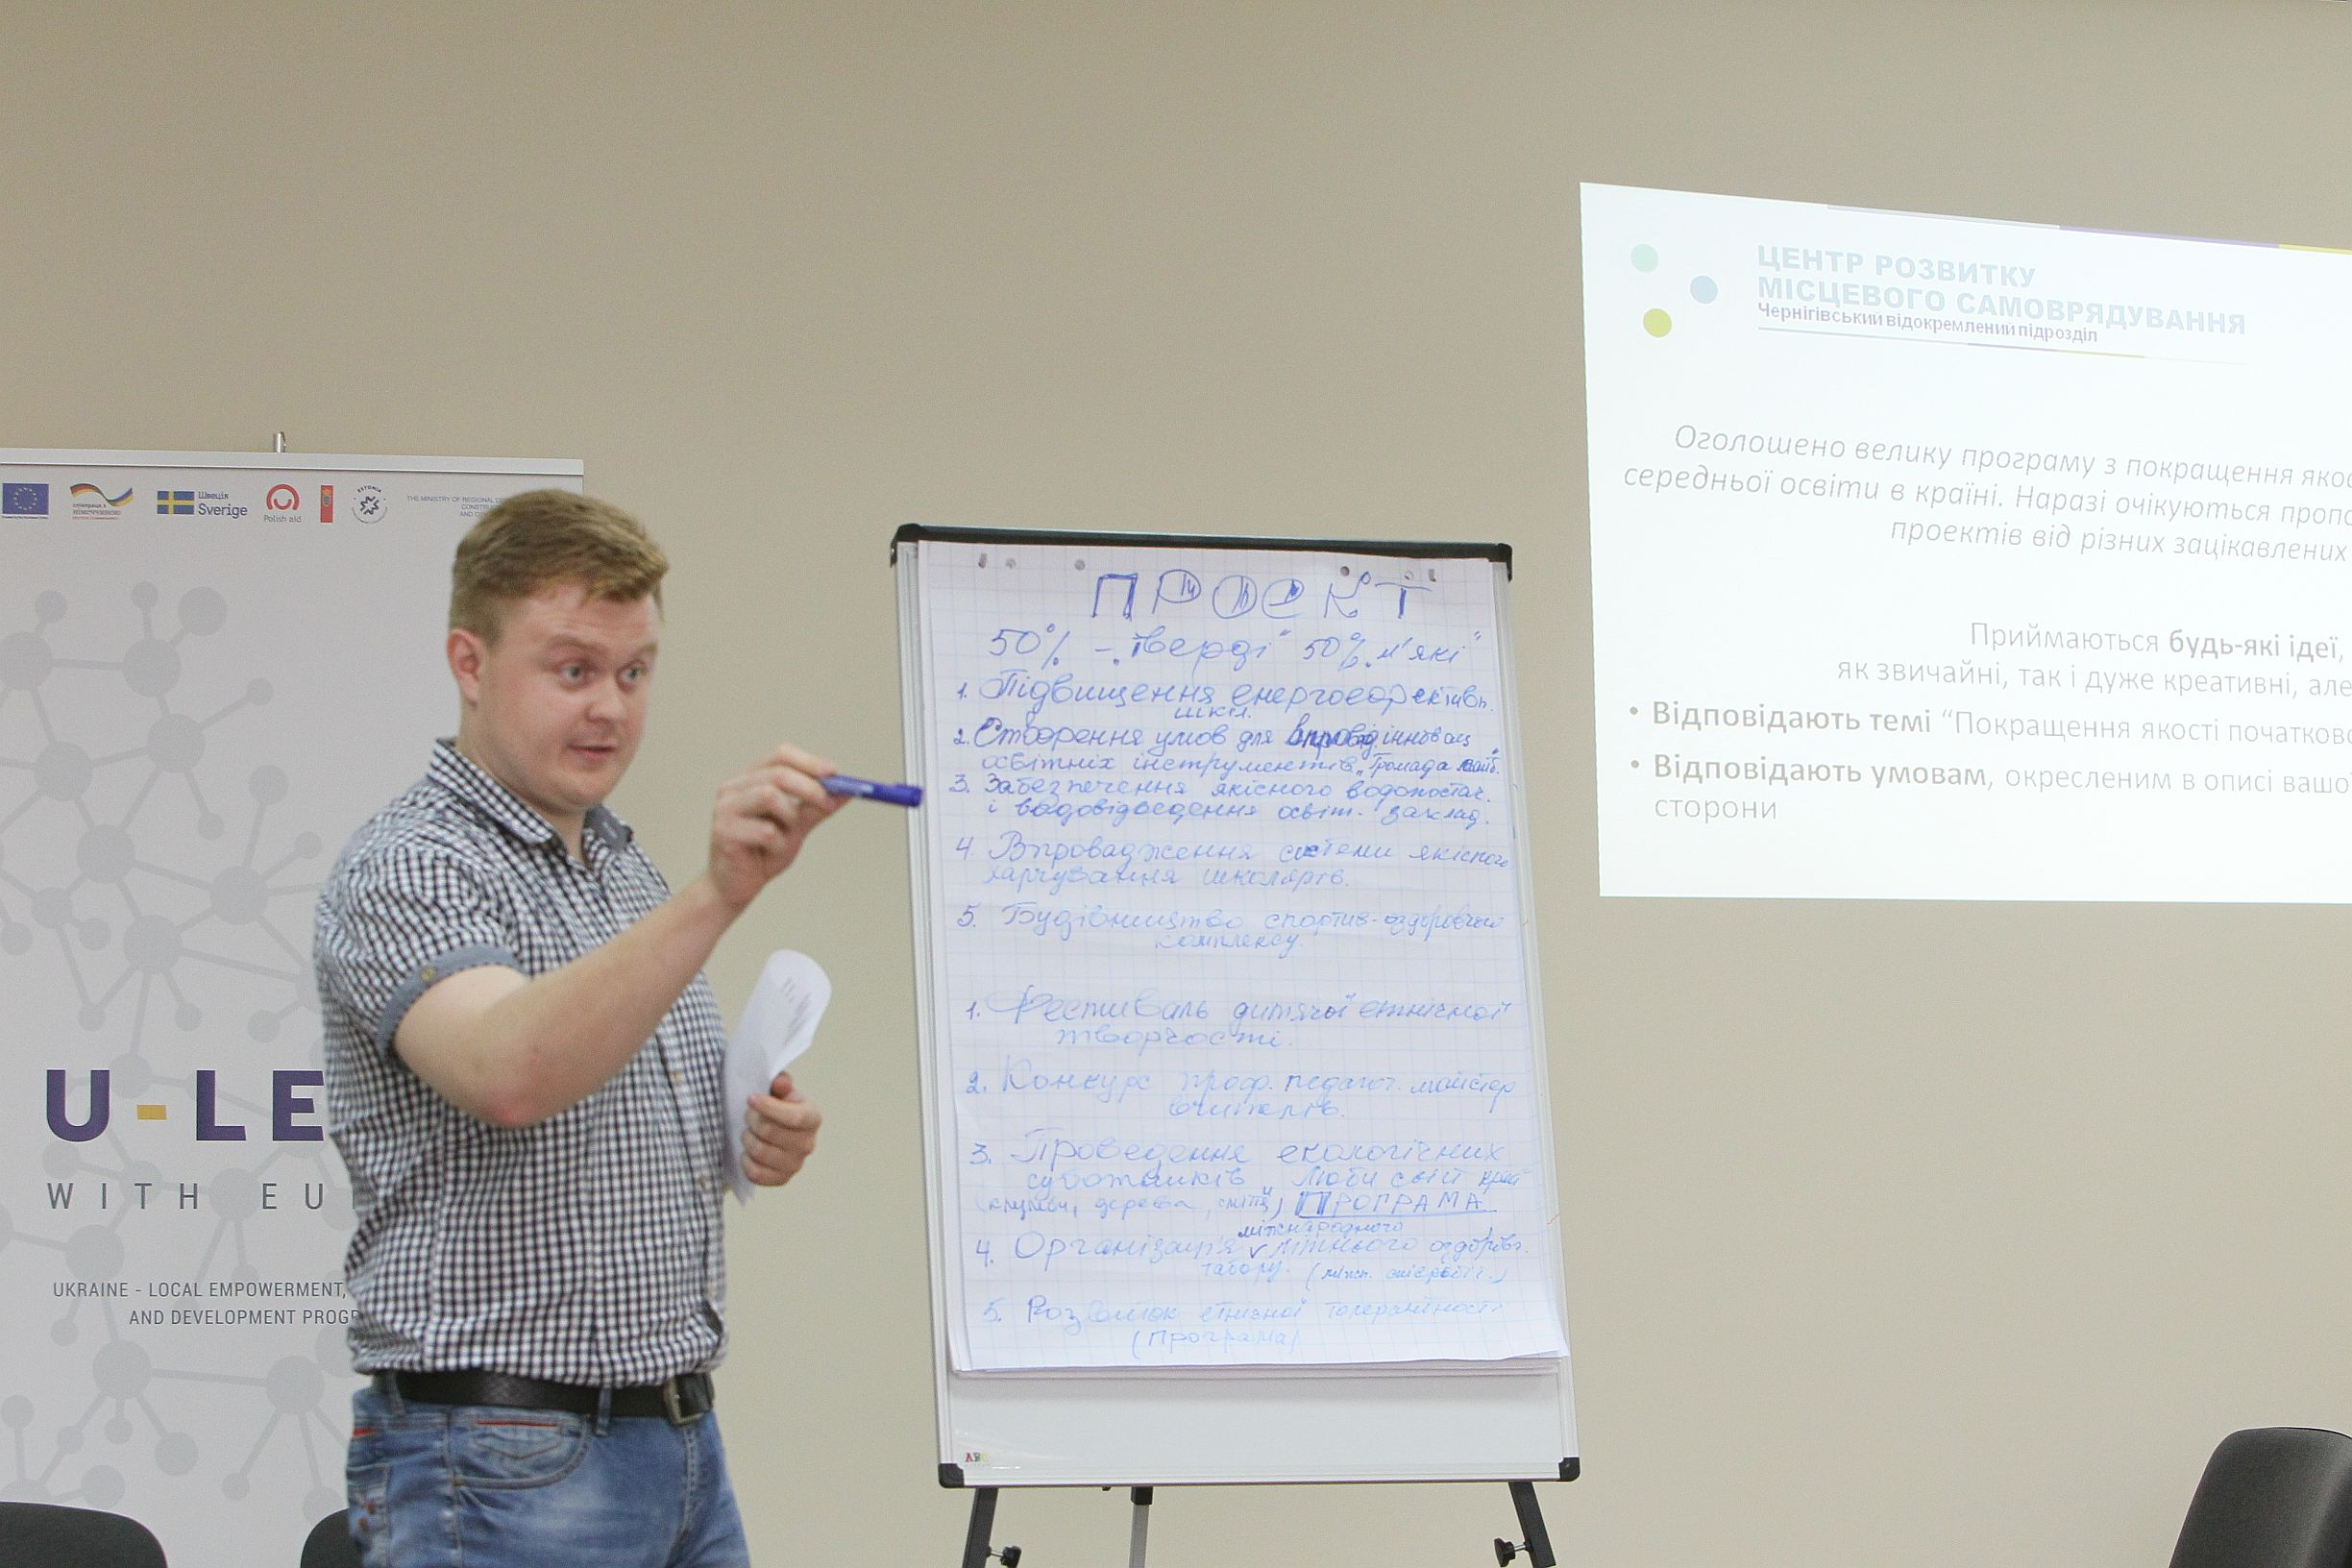 Life in style of project management for Chernihiv Oblast AHs